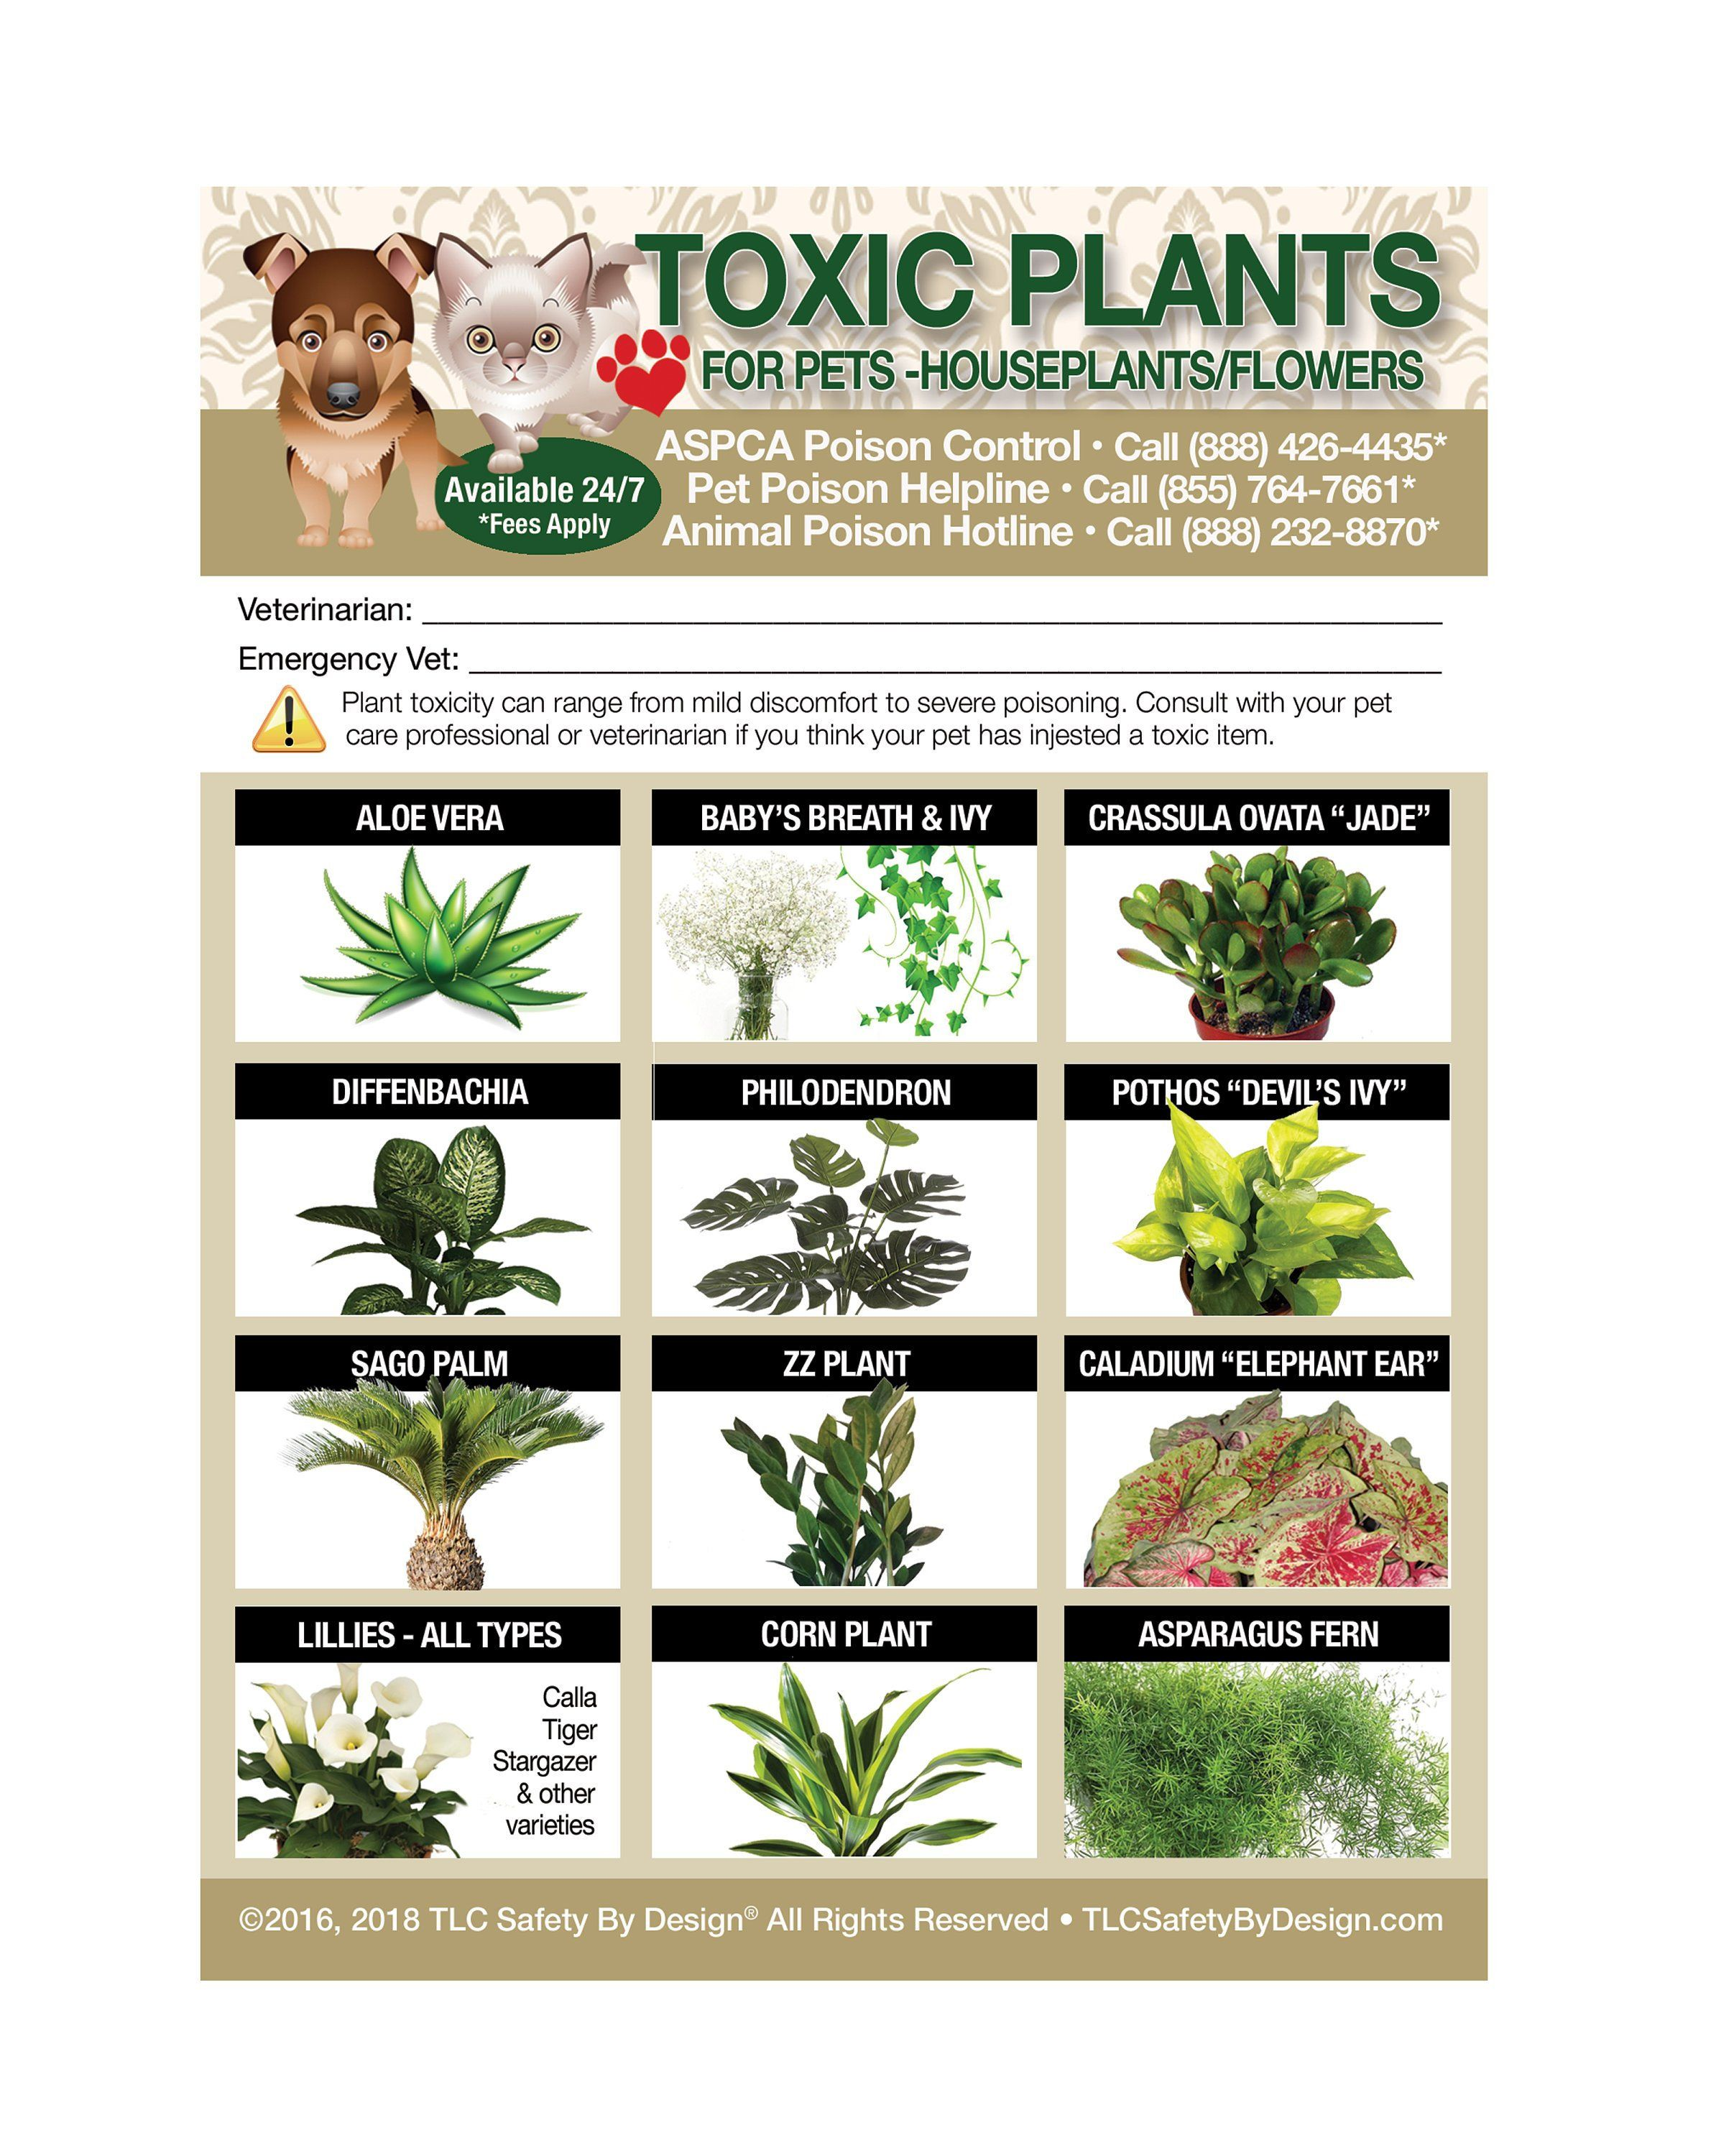 Poisonous Toxic Plants Flowers Trademarked For Pets Dogs Cats